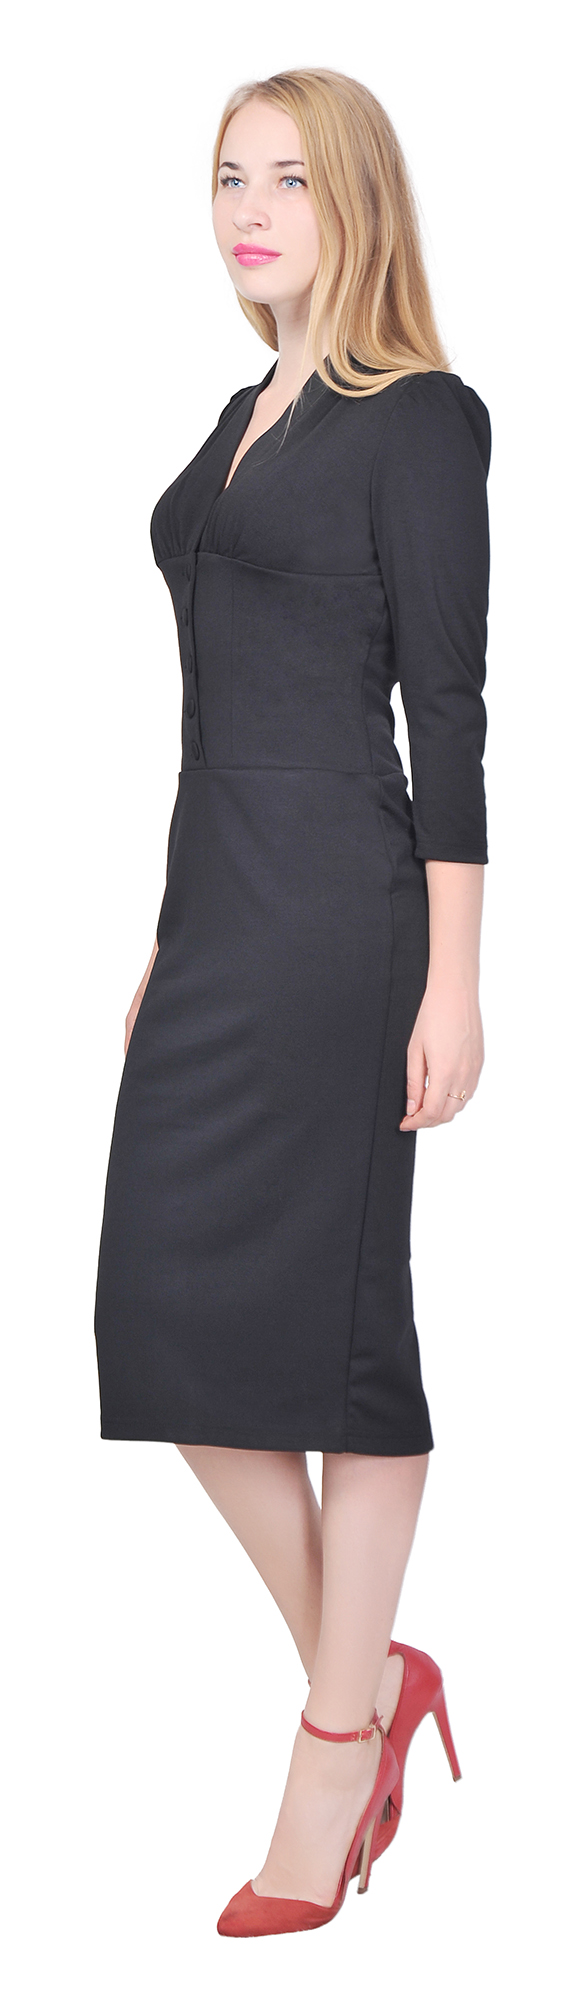 MARYCRAFTS WOMEN\'S VINTAGE 1940S PENCIL DRESS WORK OFFICE COCKTAIL ...